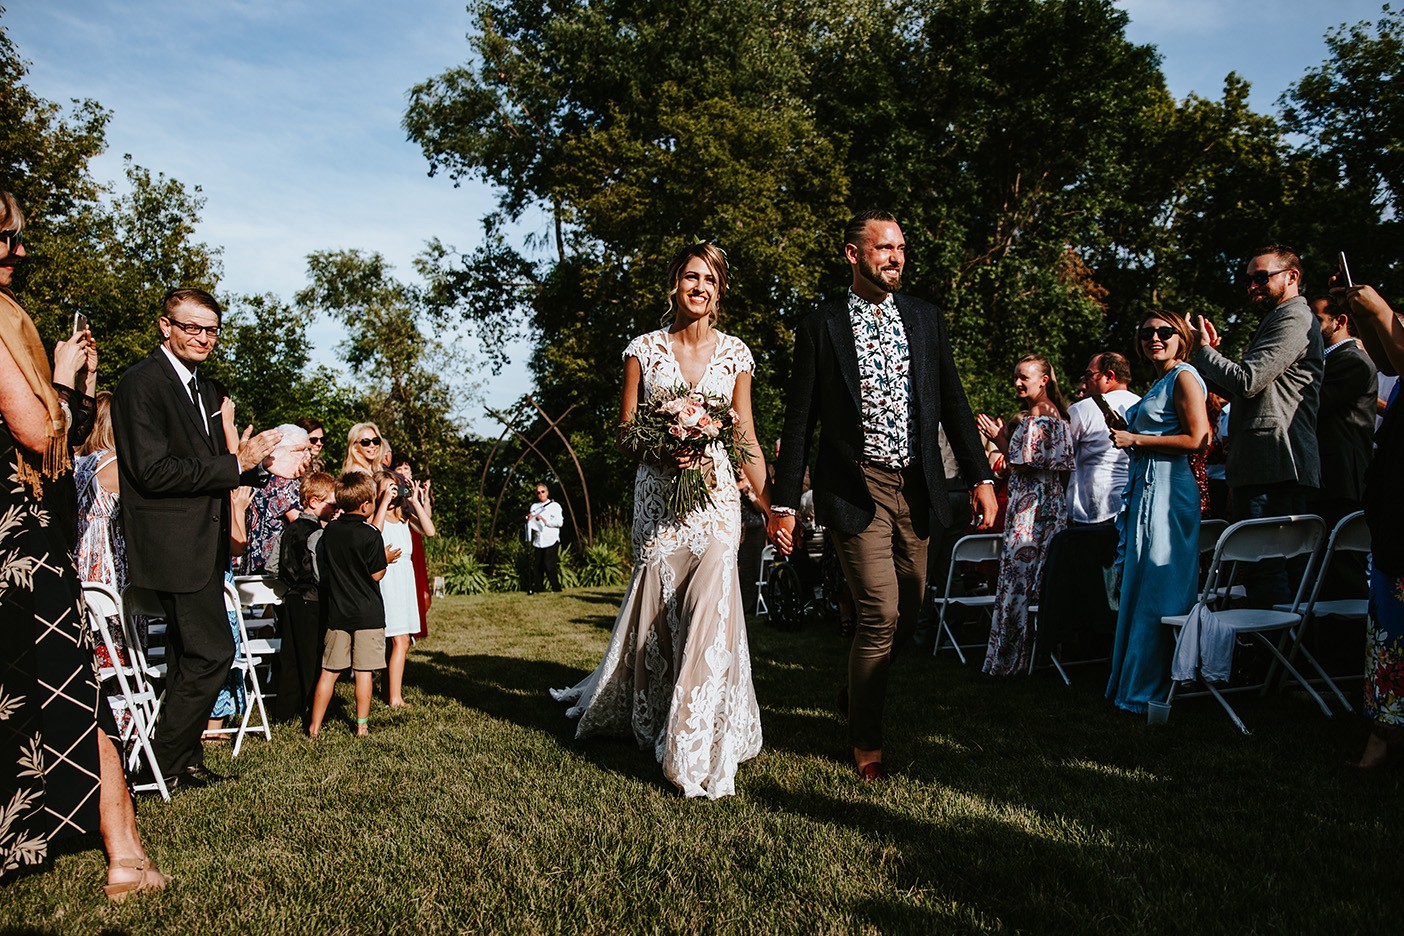 tristan pollock and danyelle ludwig walk down the aisle